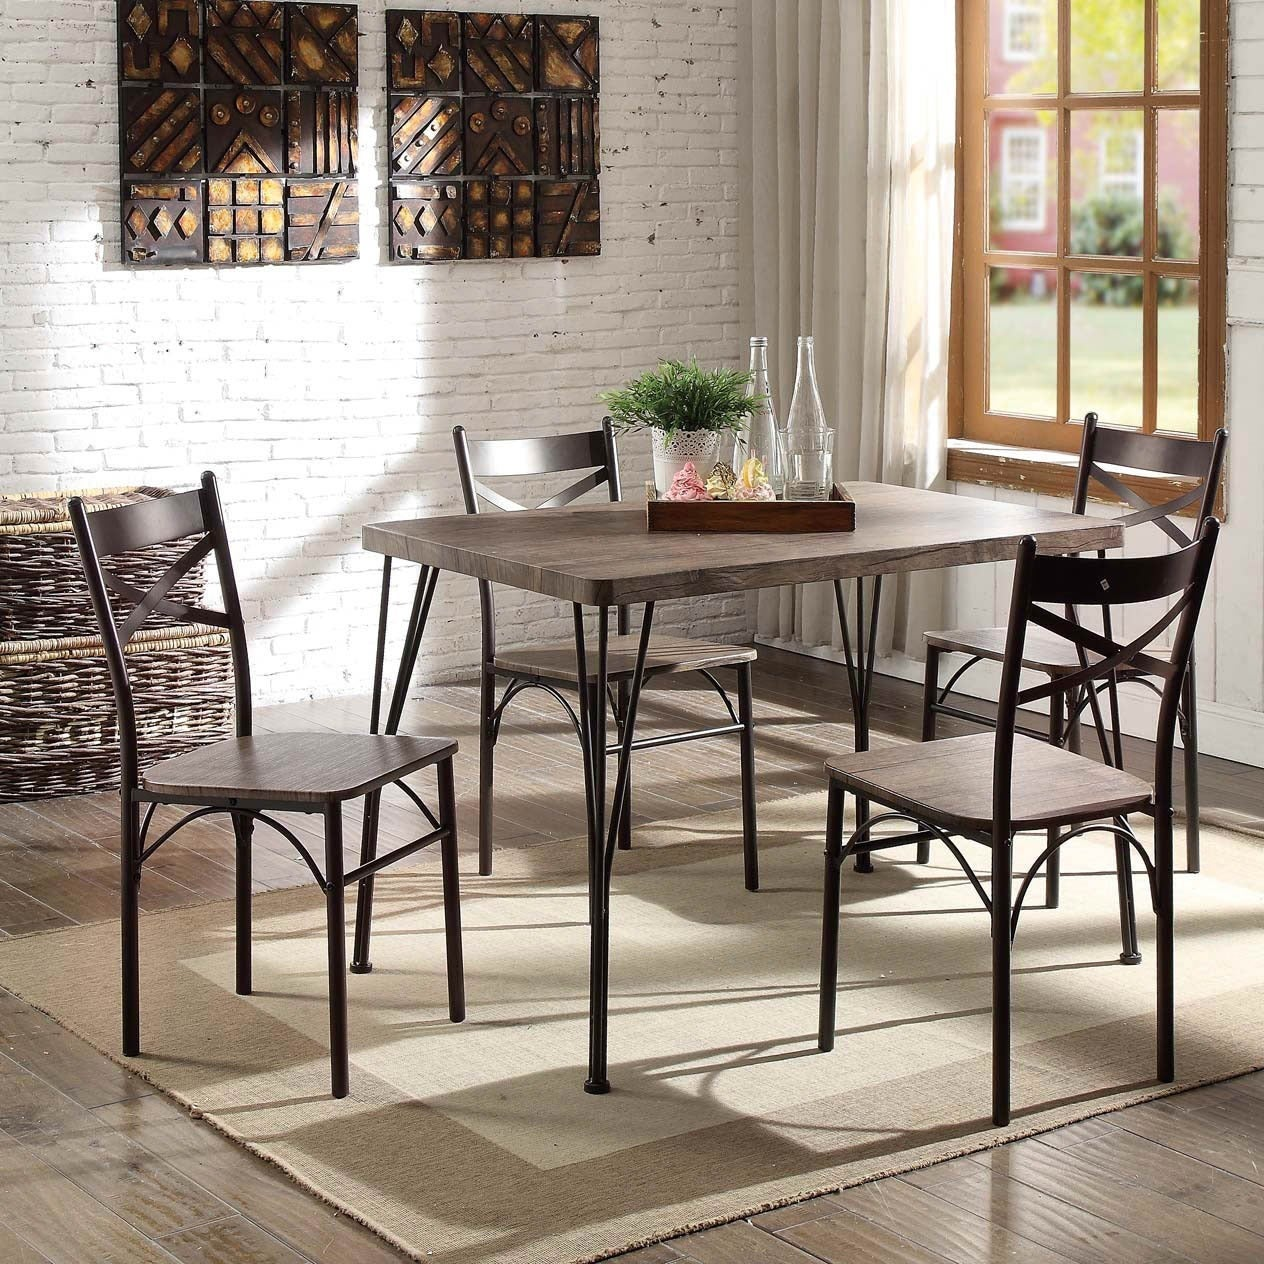 Furniture Of America Hathway 5 Piece Dark Bronze Small Dining Set